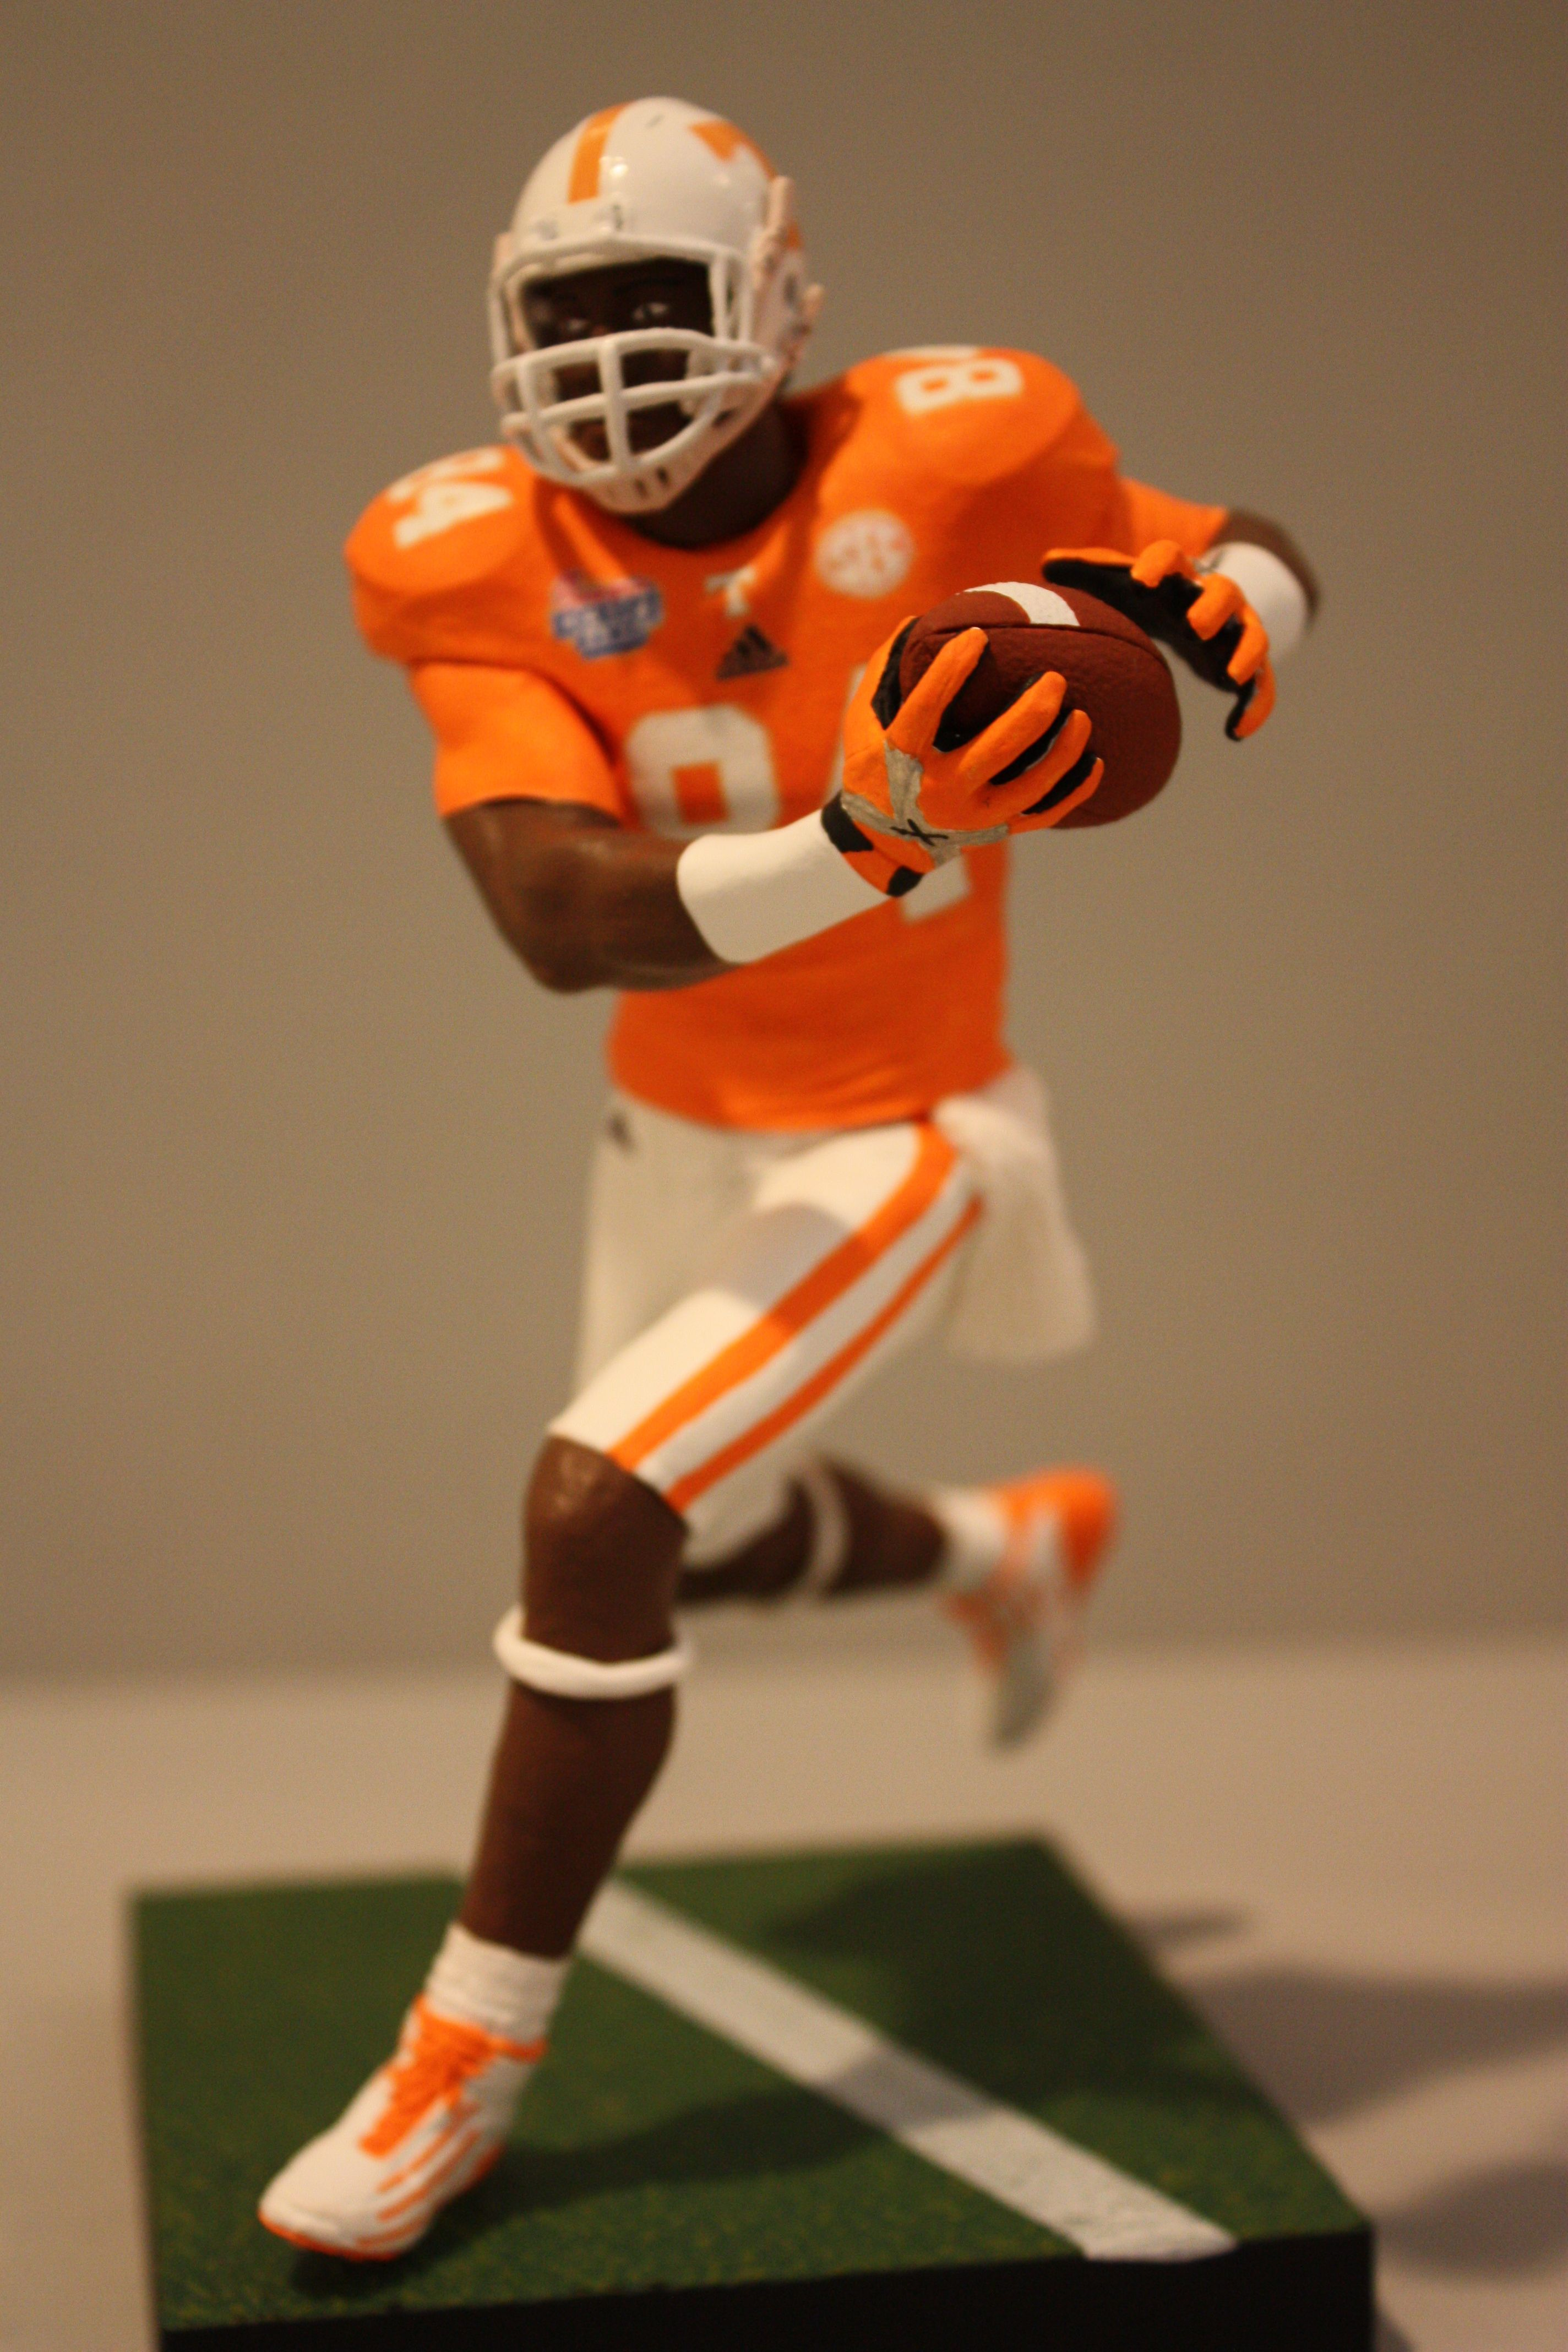 lowest price bb953 8b9f0 Tennessee Volunteers wide receiver Cordarrelle Patterson ...